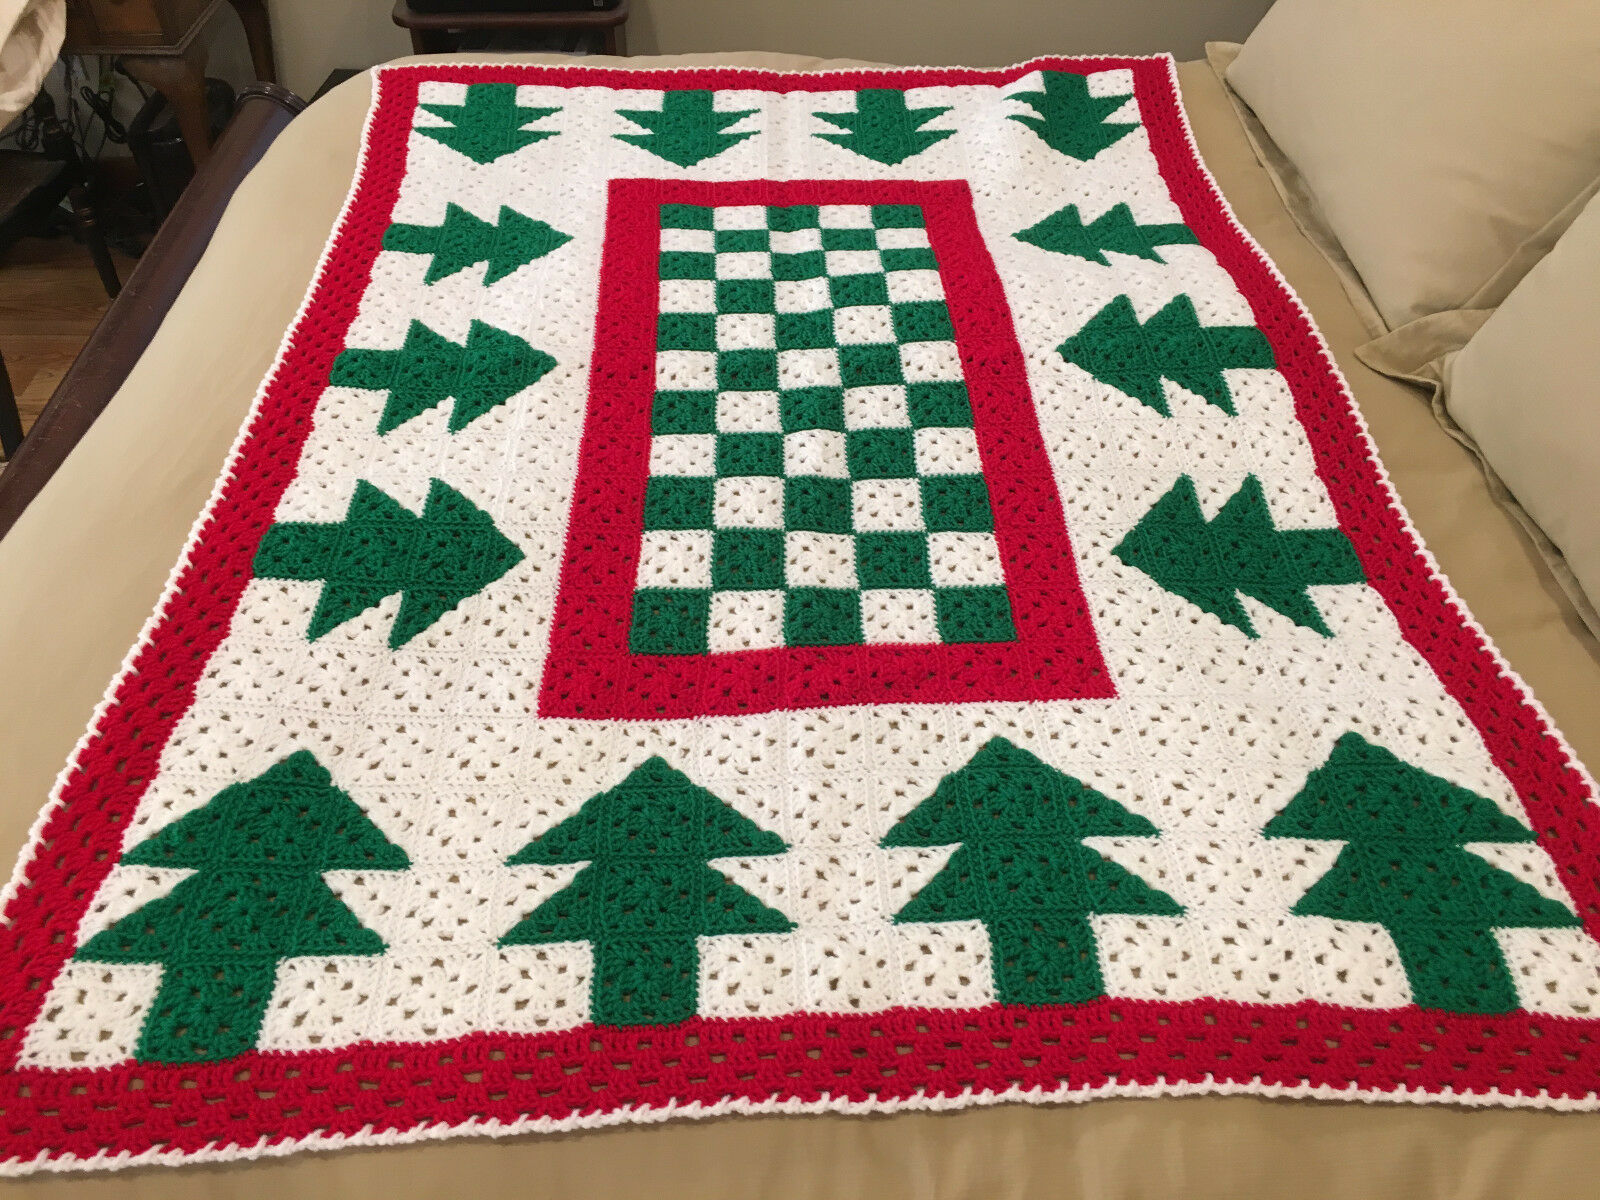 Handmade Afghan   Throw Blanket - Designer Collection - Green Christmas Trees